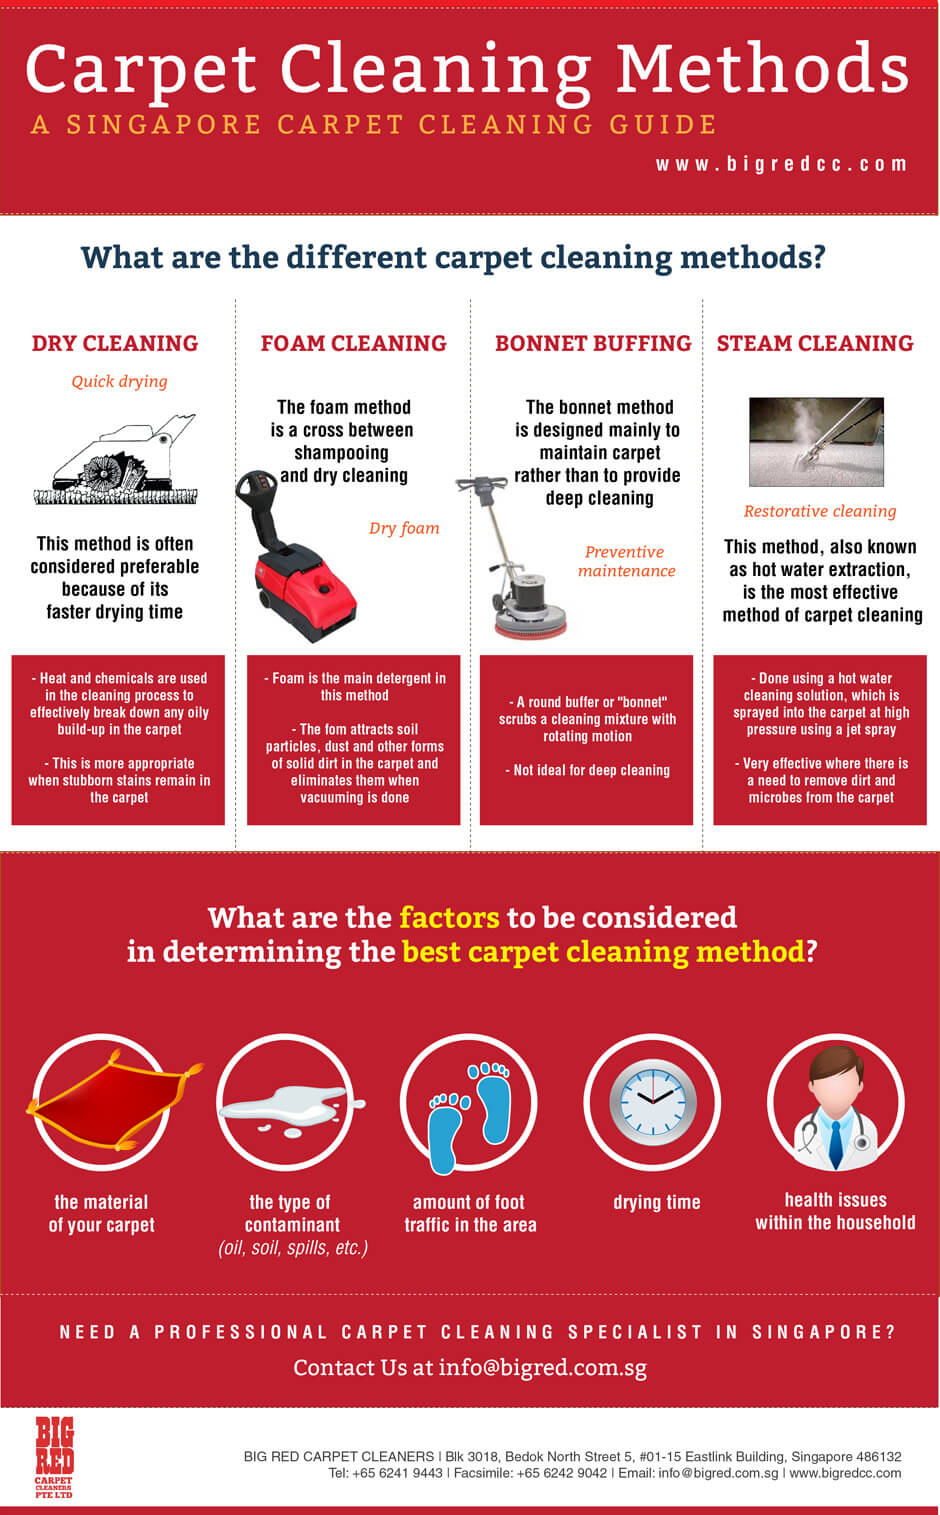 Blenheim Carpet Care NZ Uses The Most Effective Carpet Cleaning Method